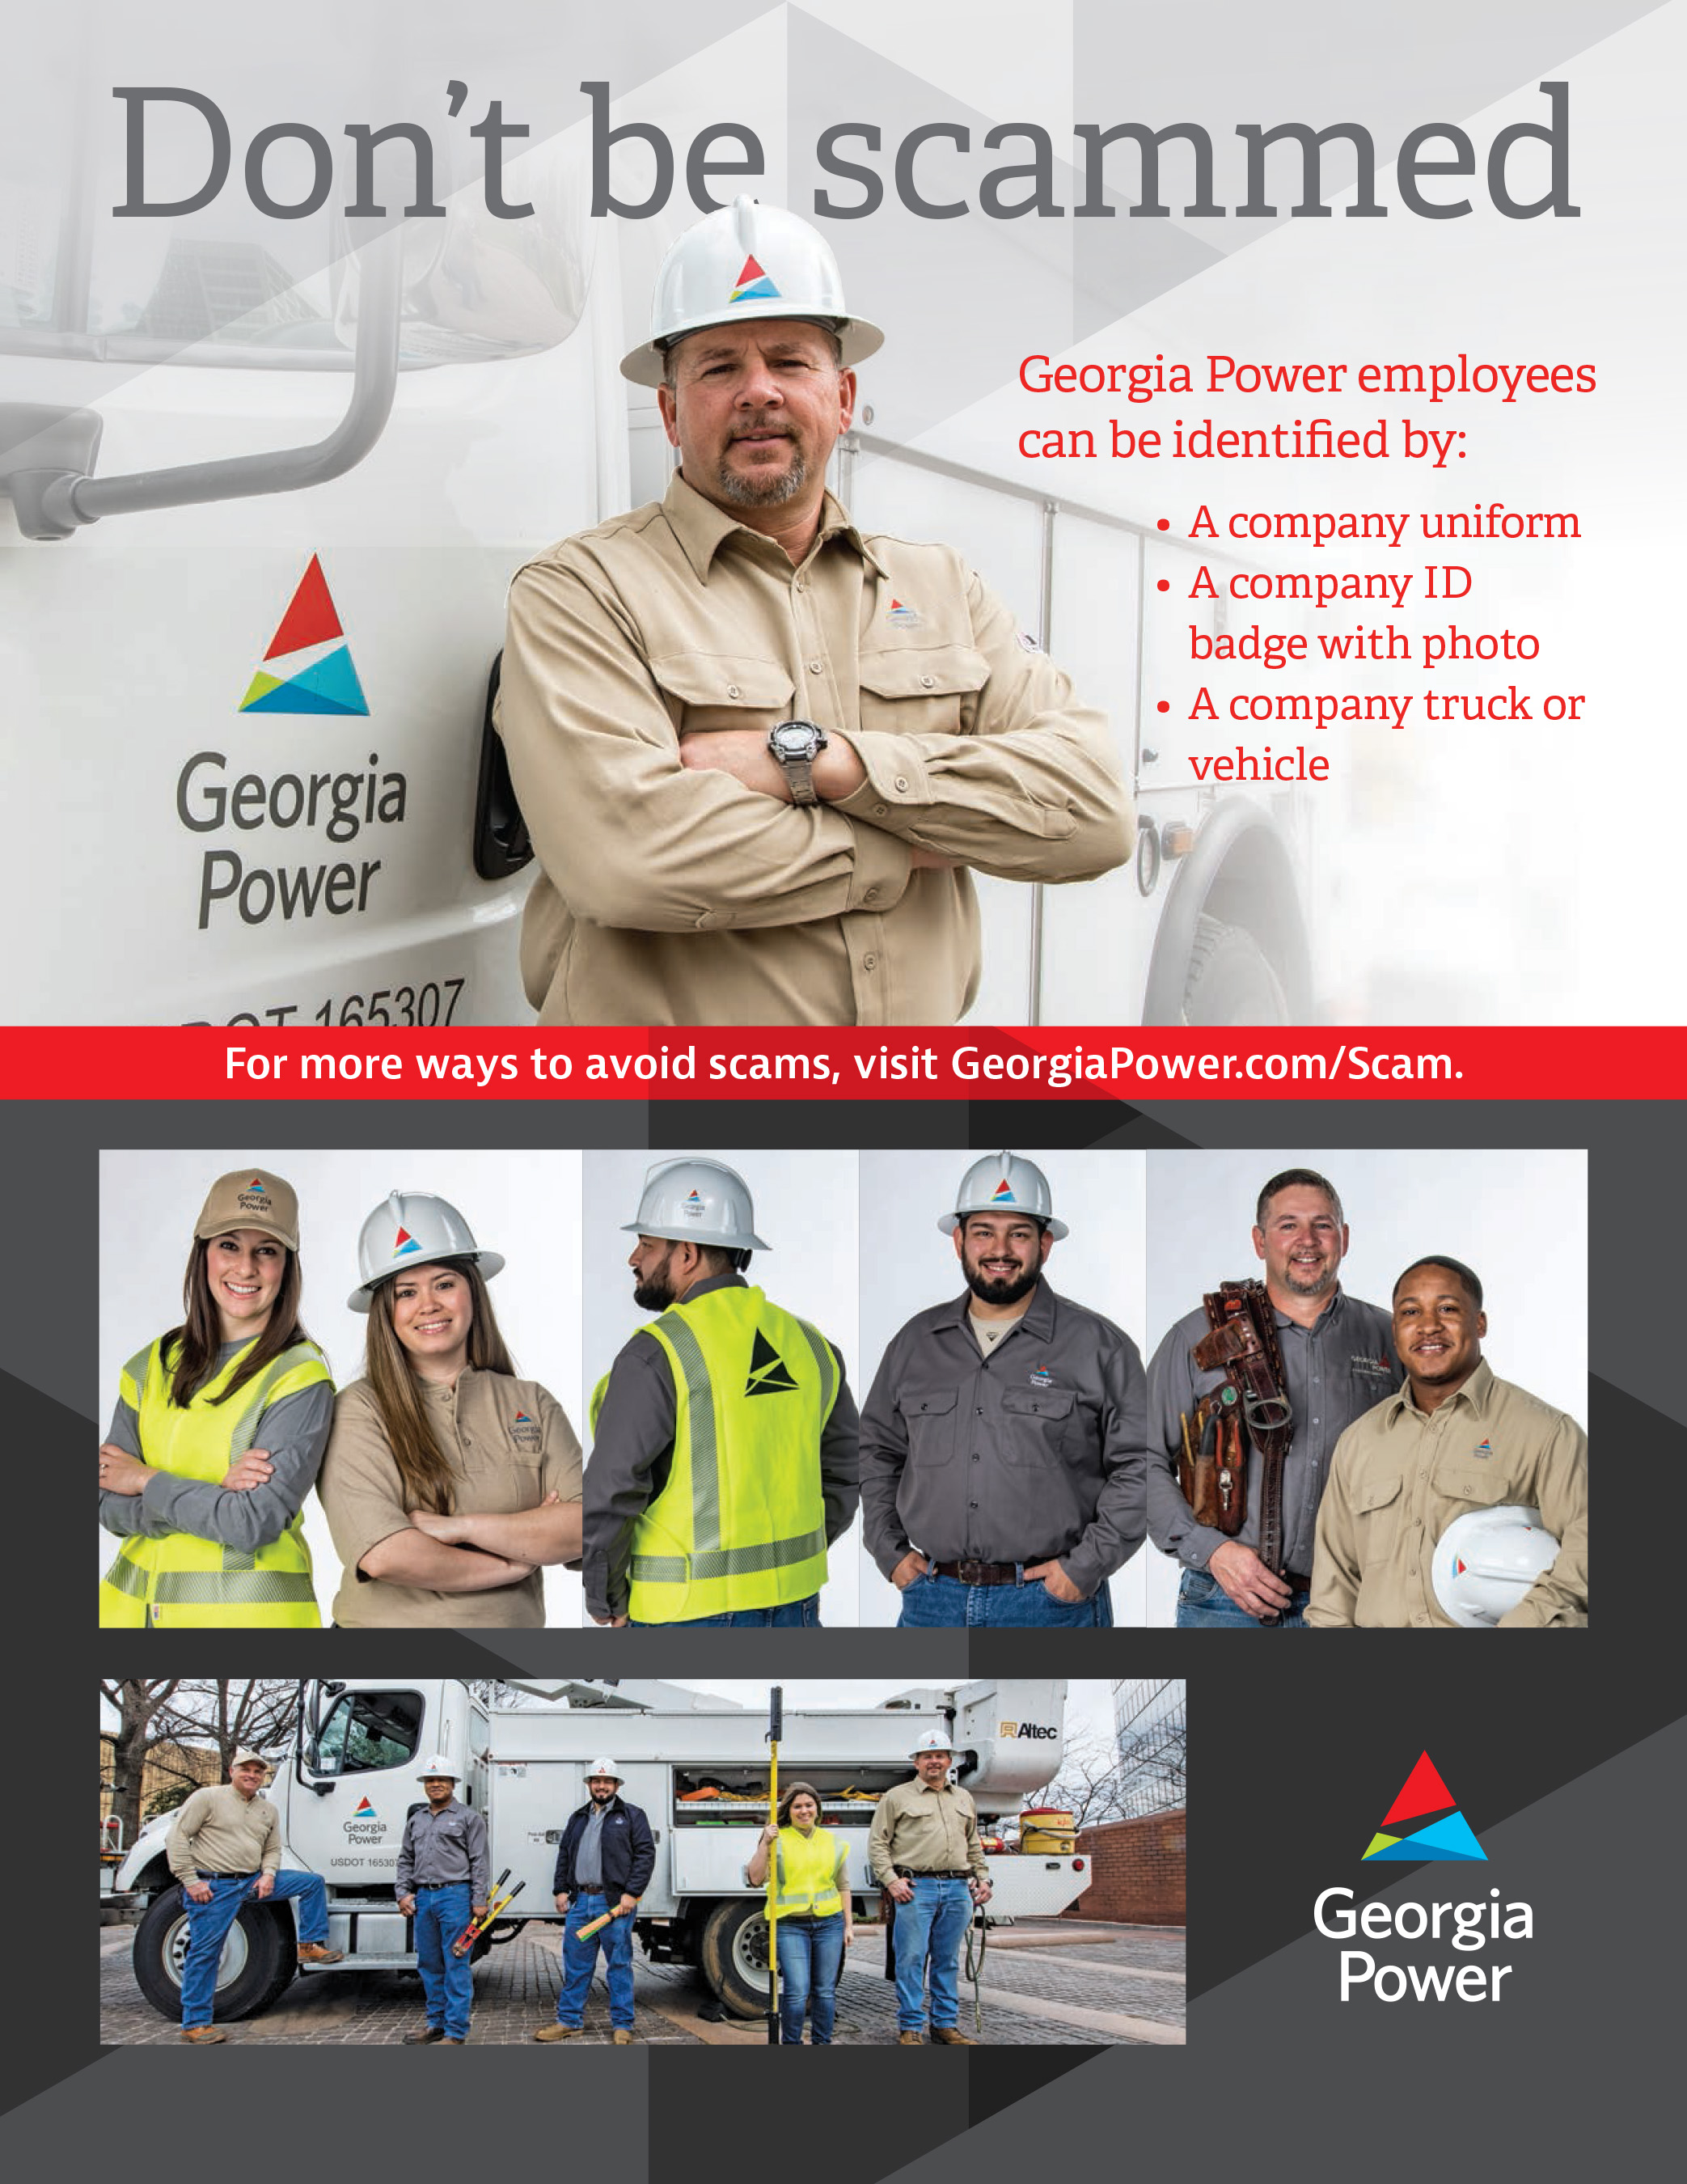 Don't be scammed. Learn how to identify Georgia Power employees in the field.